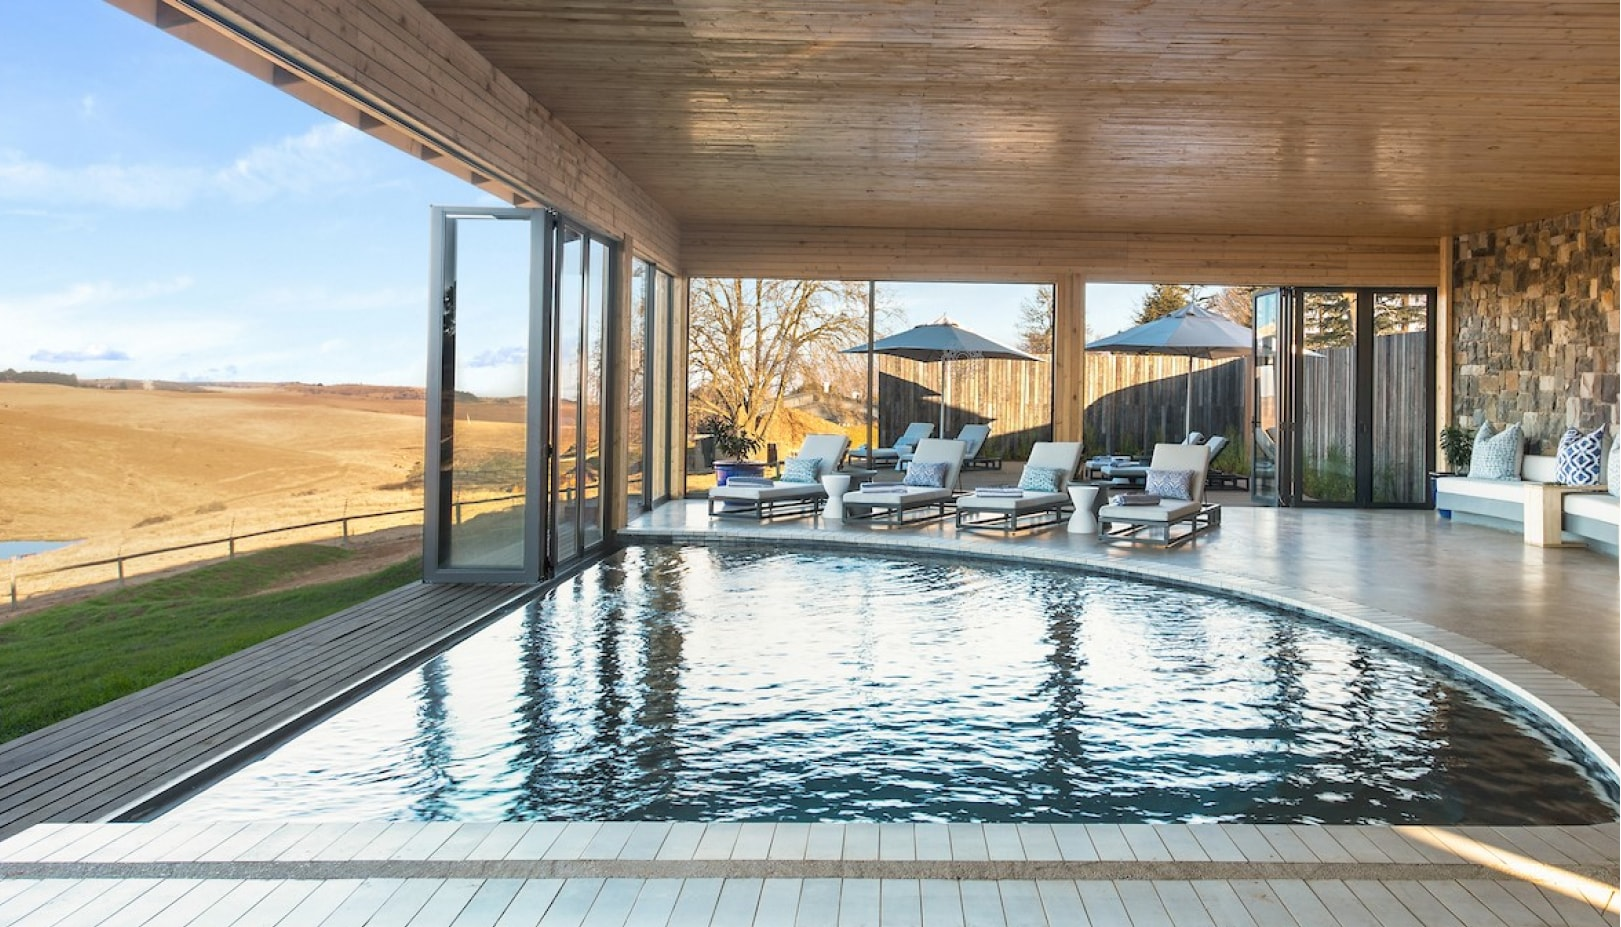 A luxury heated indoor swimming pool? Ooo, yes, that'll do nicely.